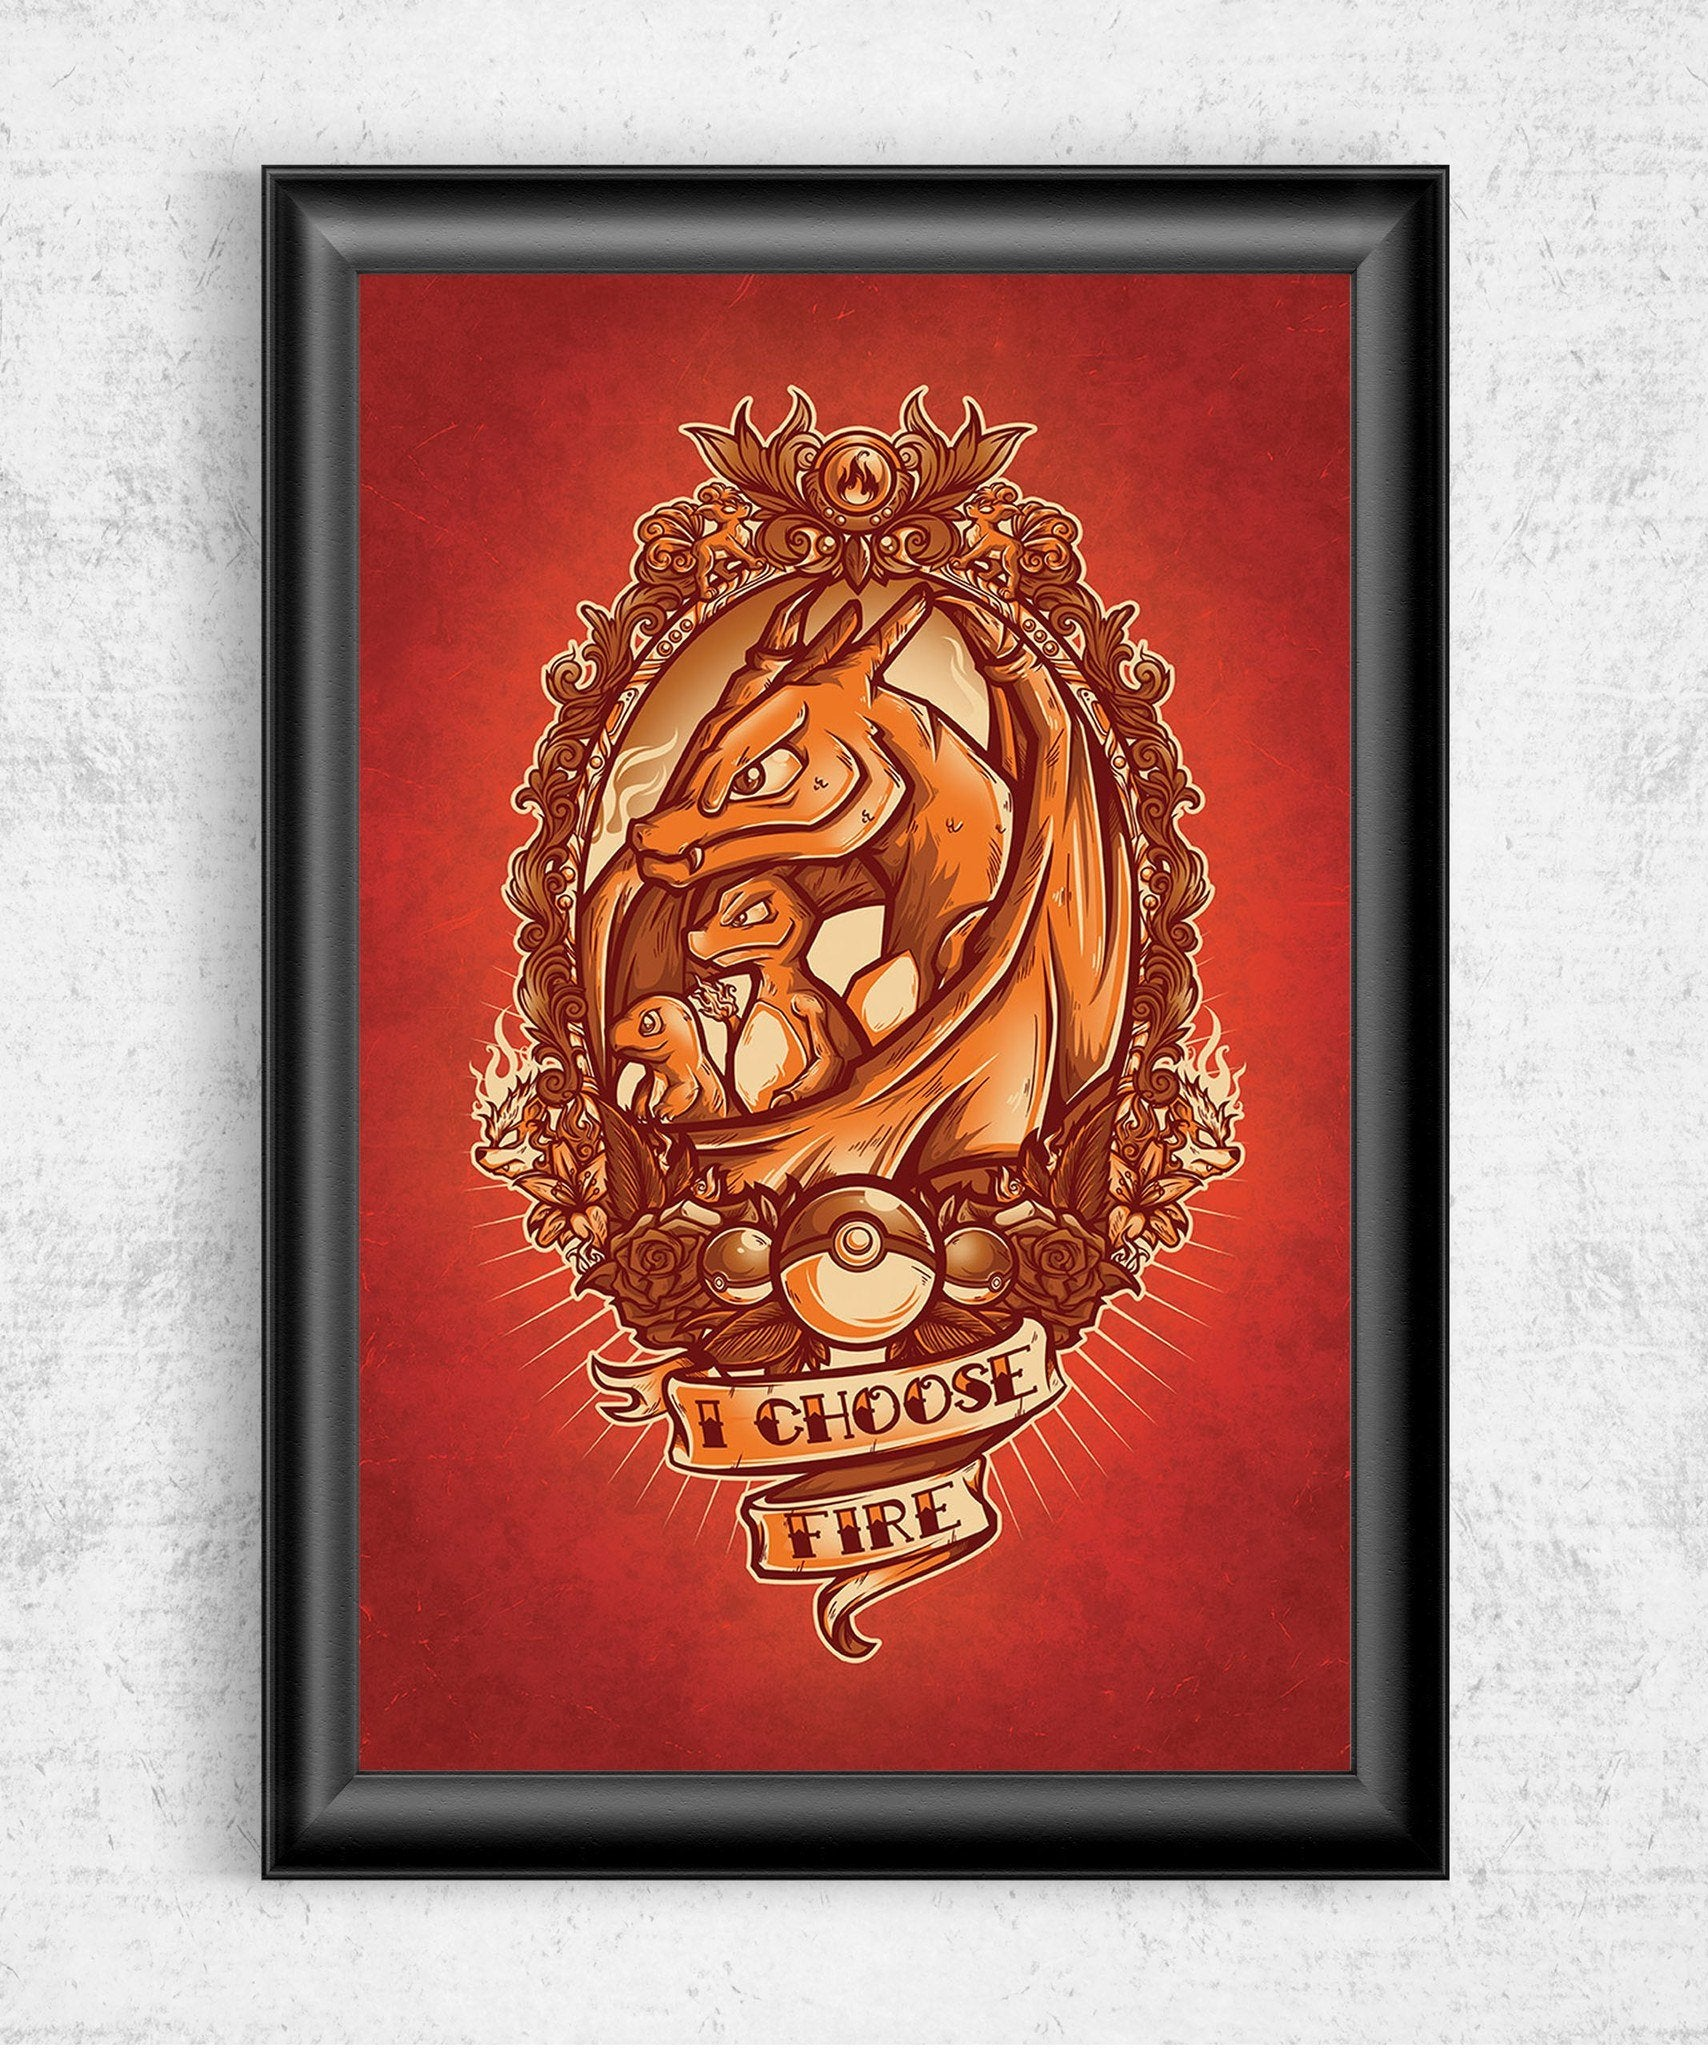 I Choose Fire Posters by Juan Manuel Orozco - Pixel Empire